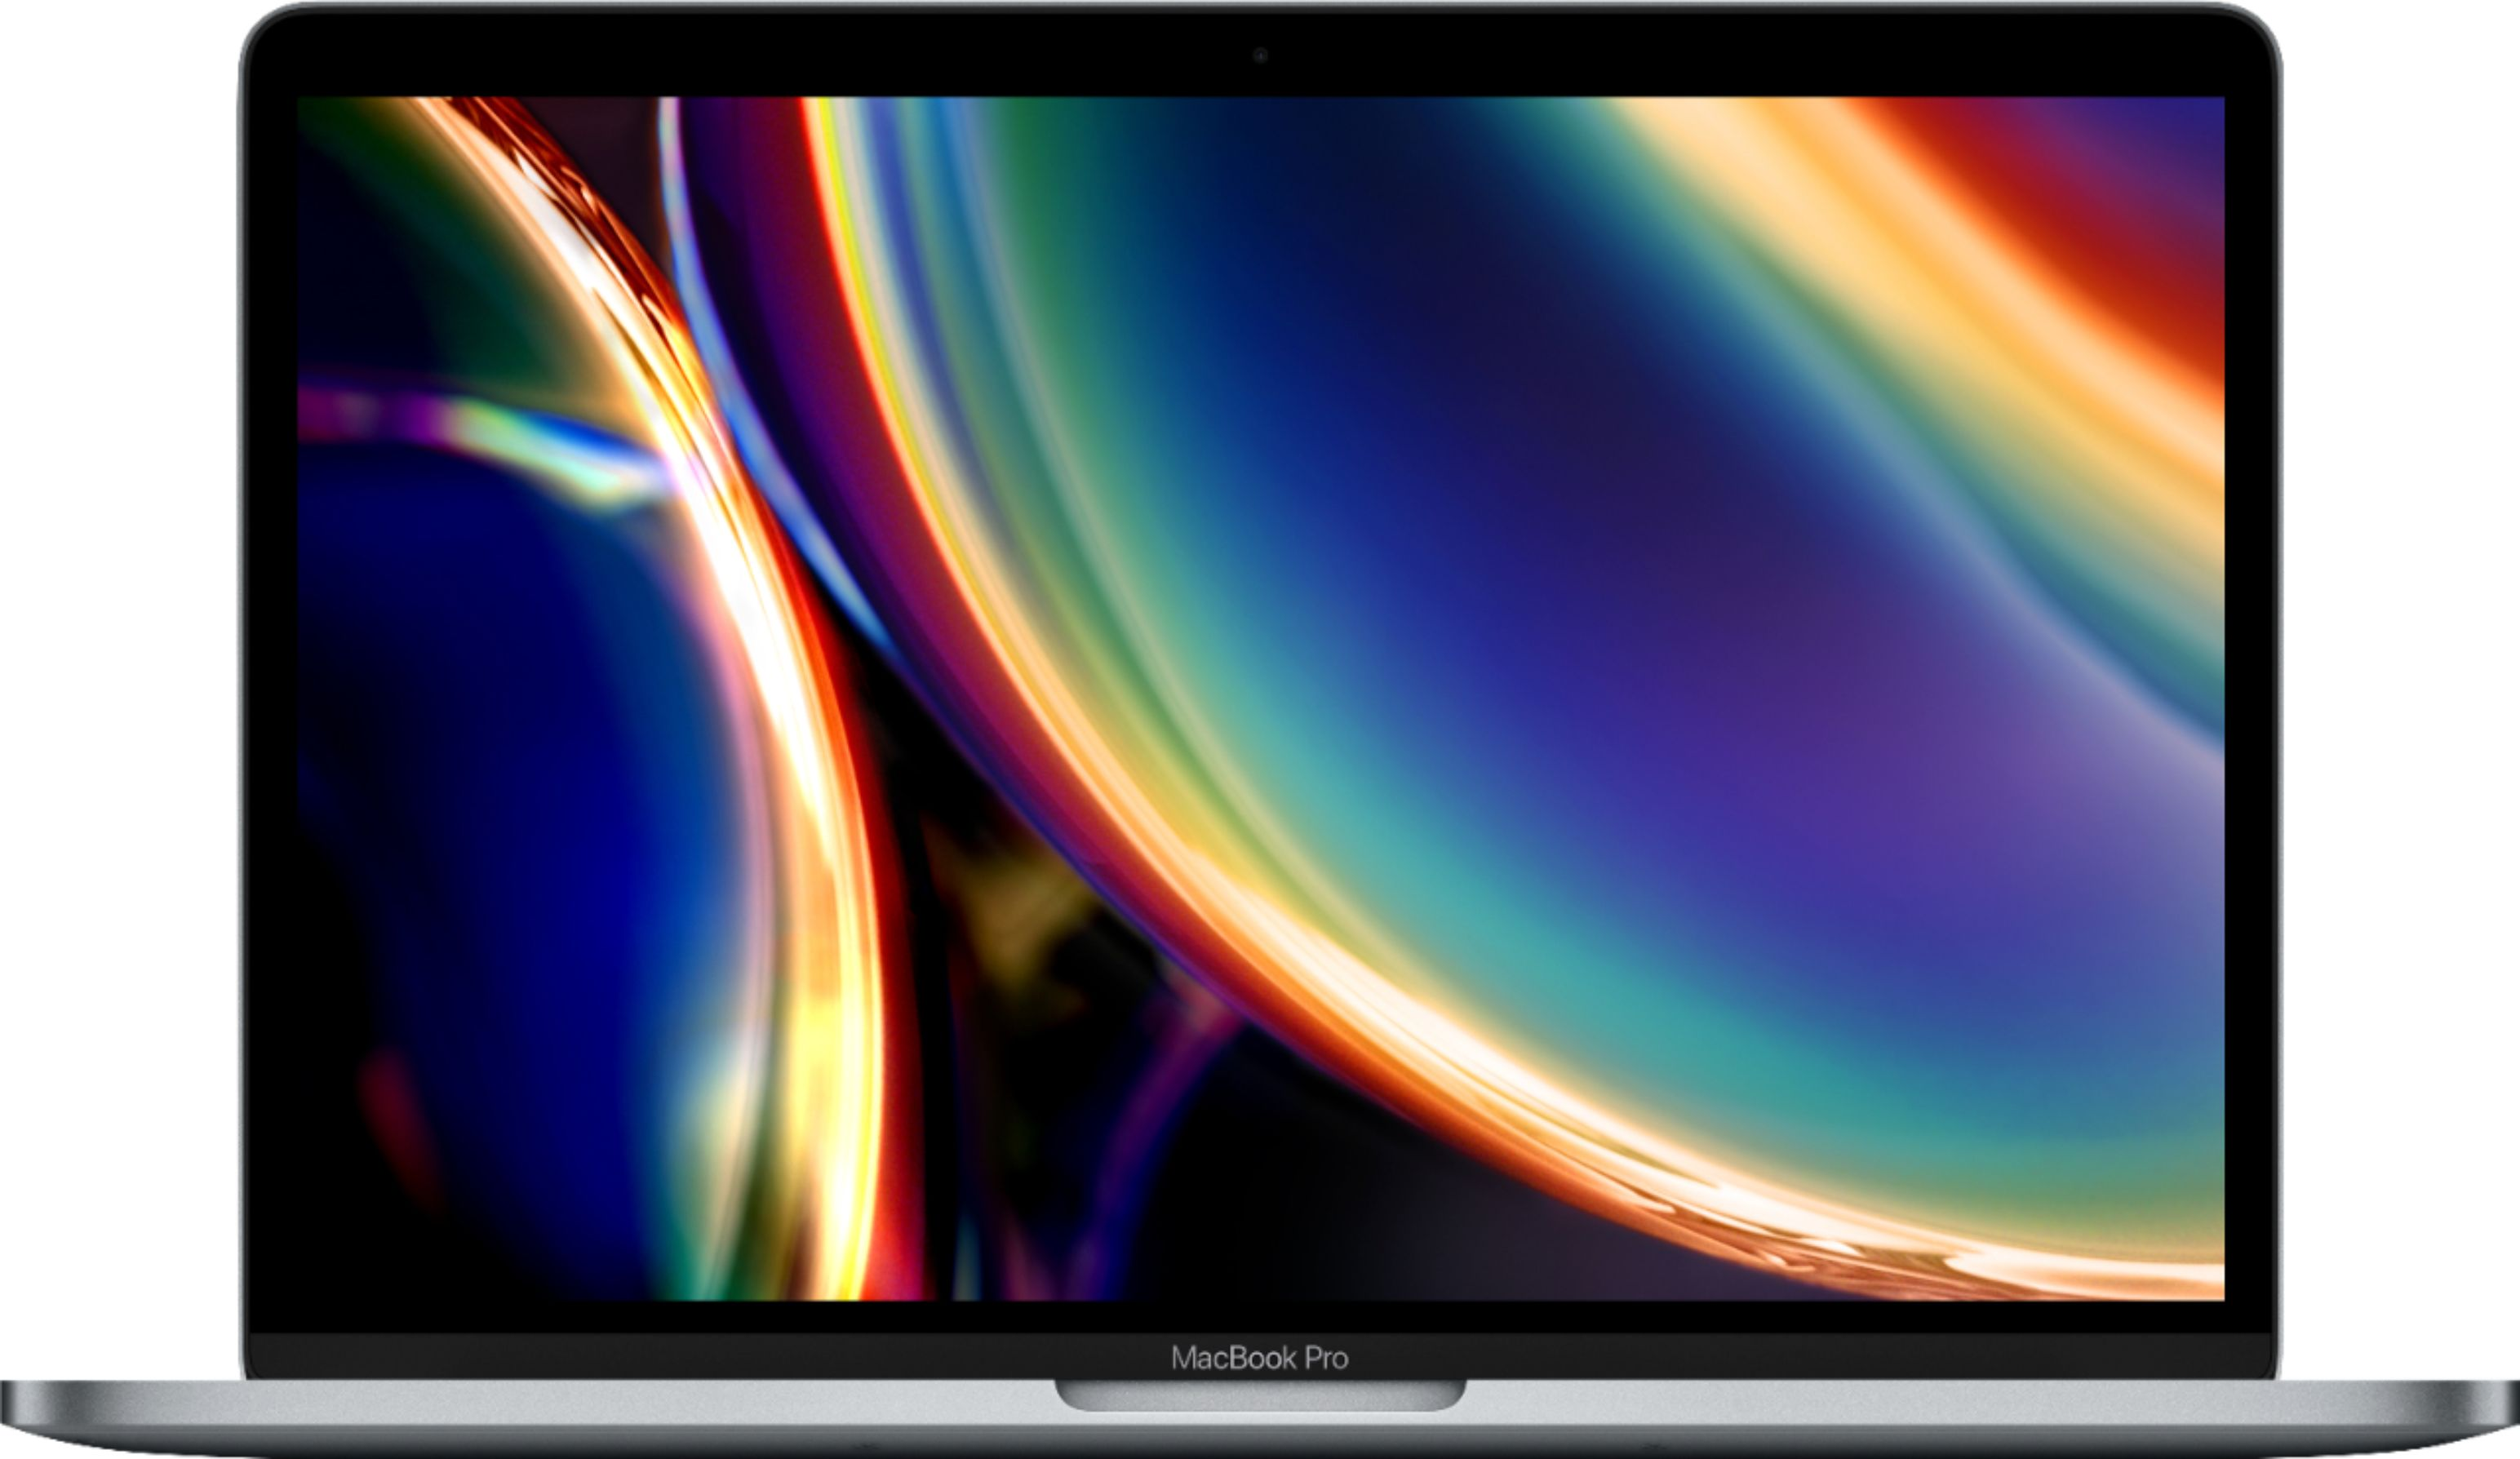 "Front Zoom. Apple - Geek Squad Certified Refurbished MacBook Pro - 13"" Display with Touch Bar - Intel Core i5 - 16GB Memory - 512GB SSD - Space Gray."